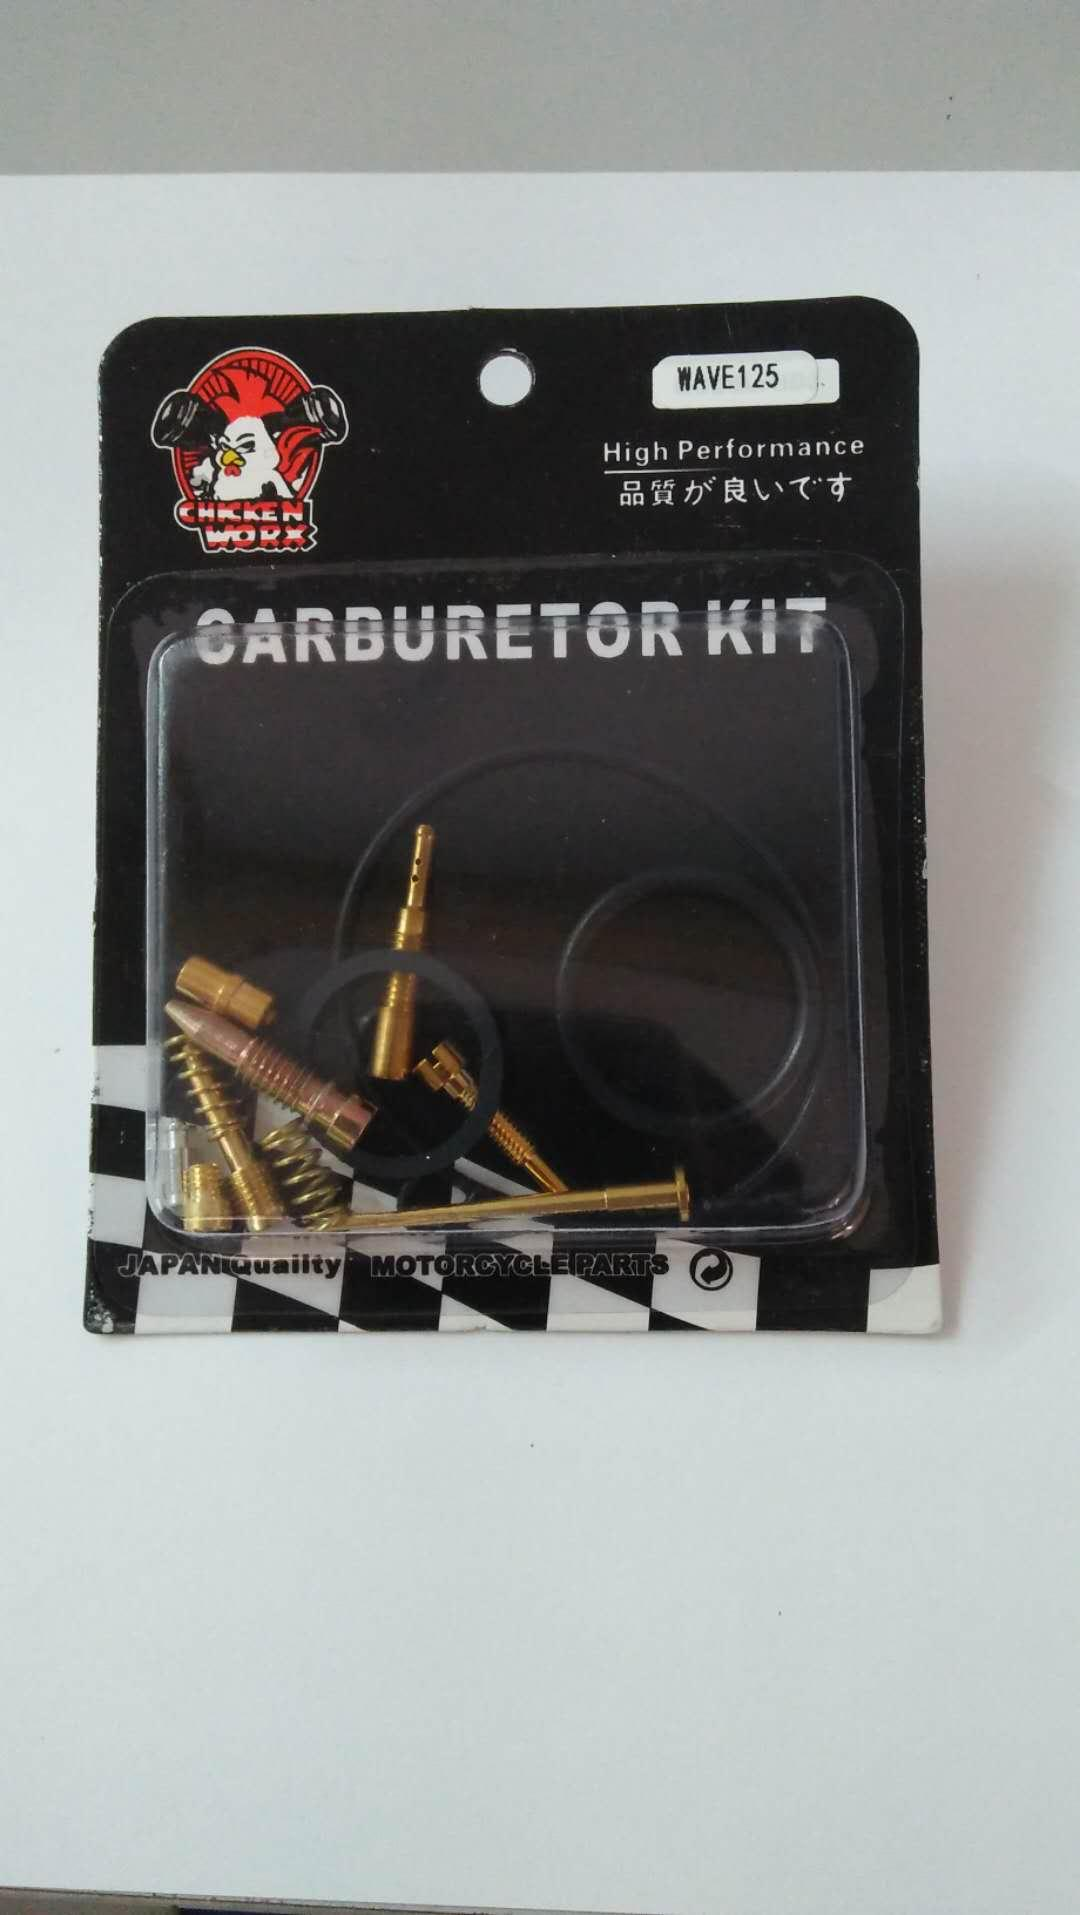 Carburetor Repair Kit Wave125 By Xzycollection.